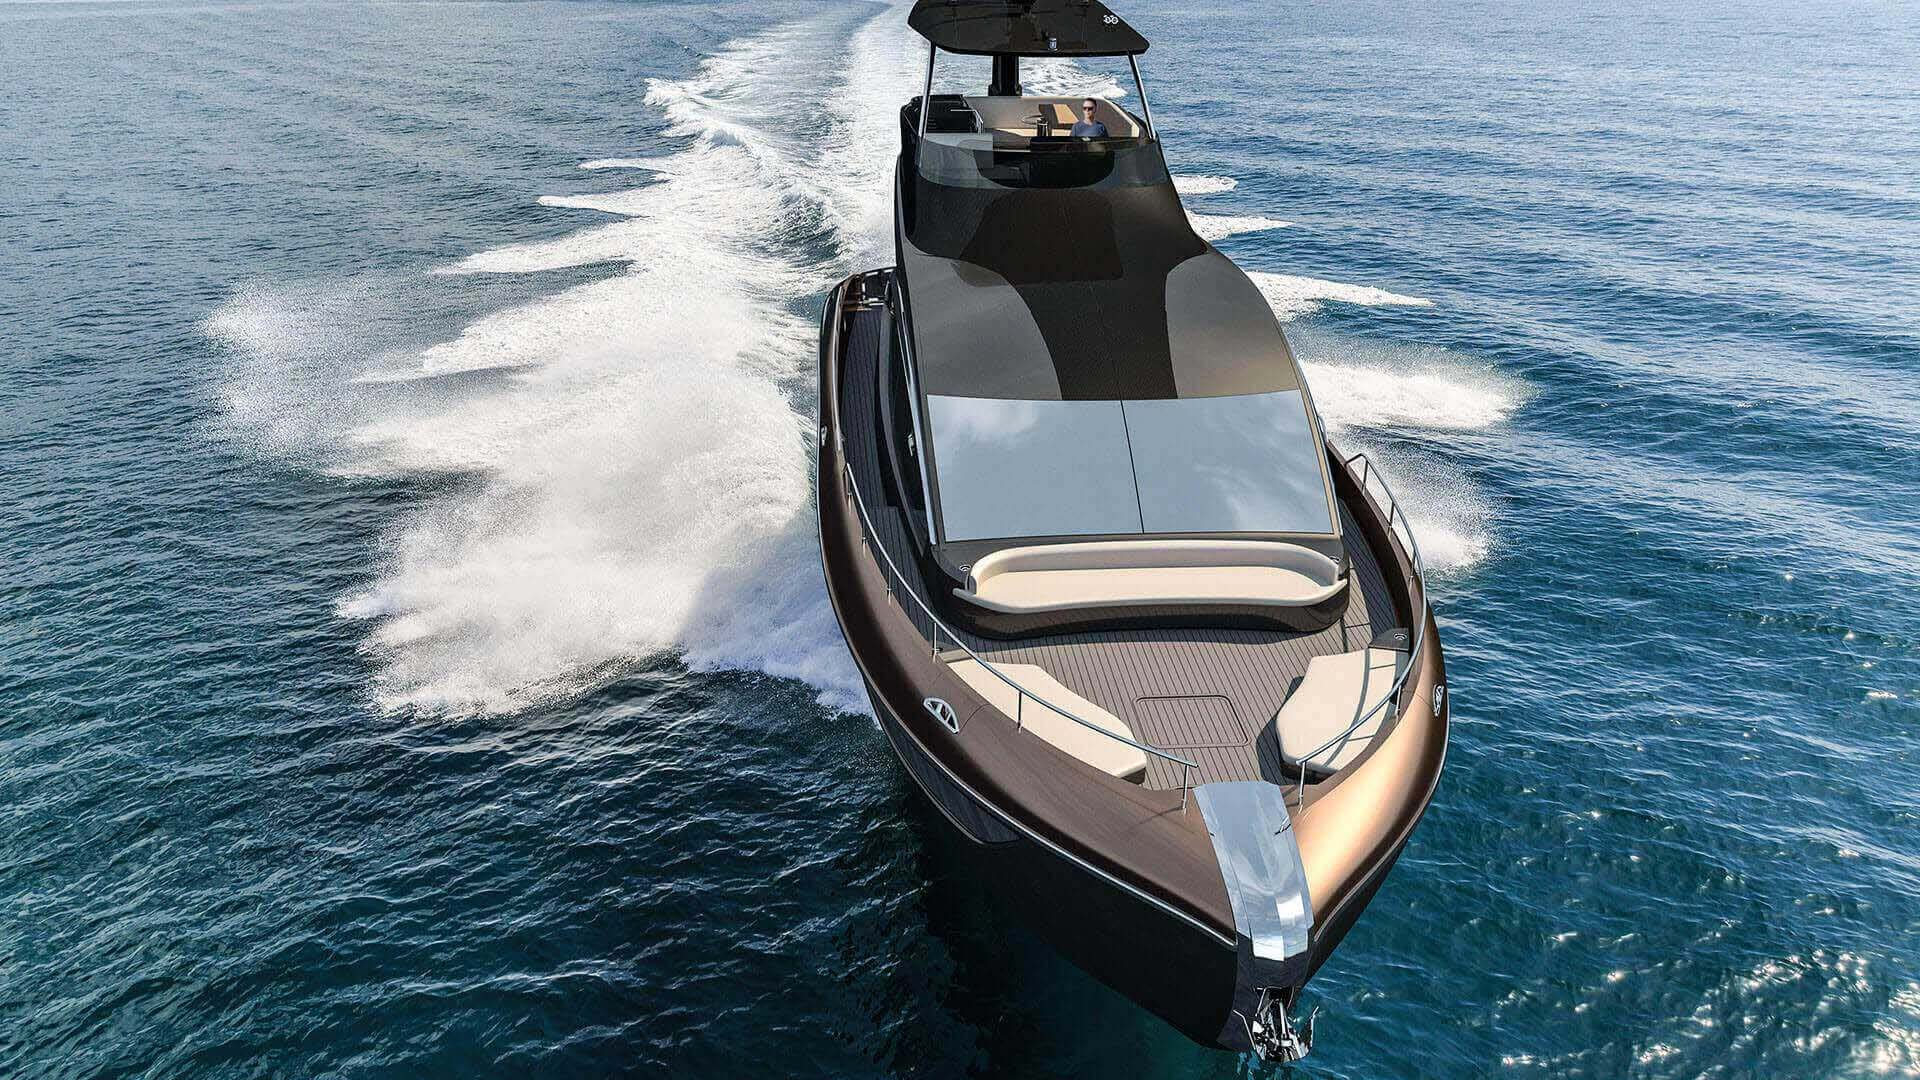 2019 lexus ly 650 luxury yacht gallery 03 1920x1080 v2